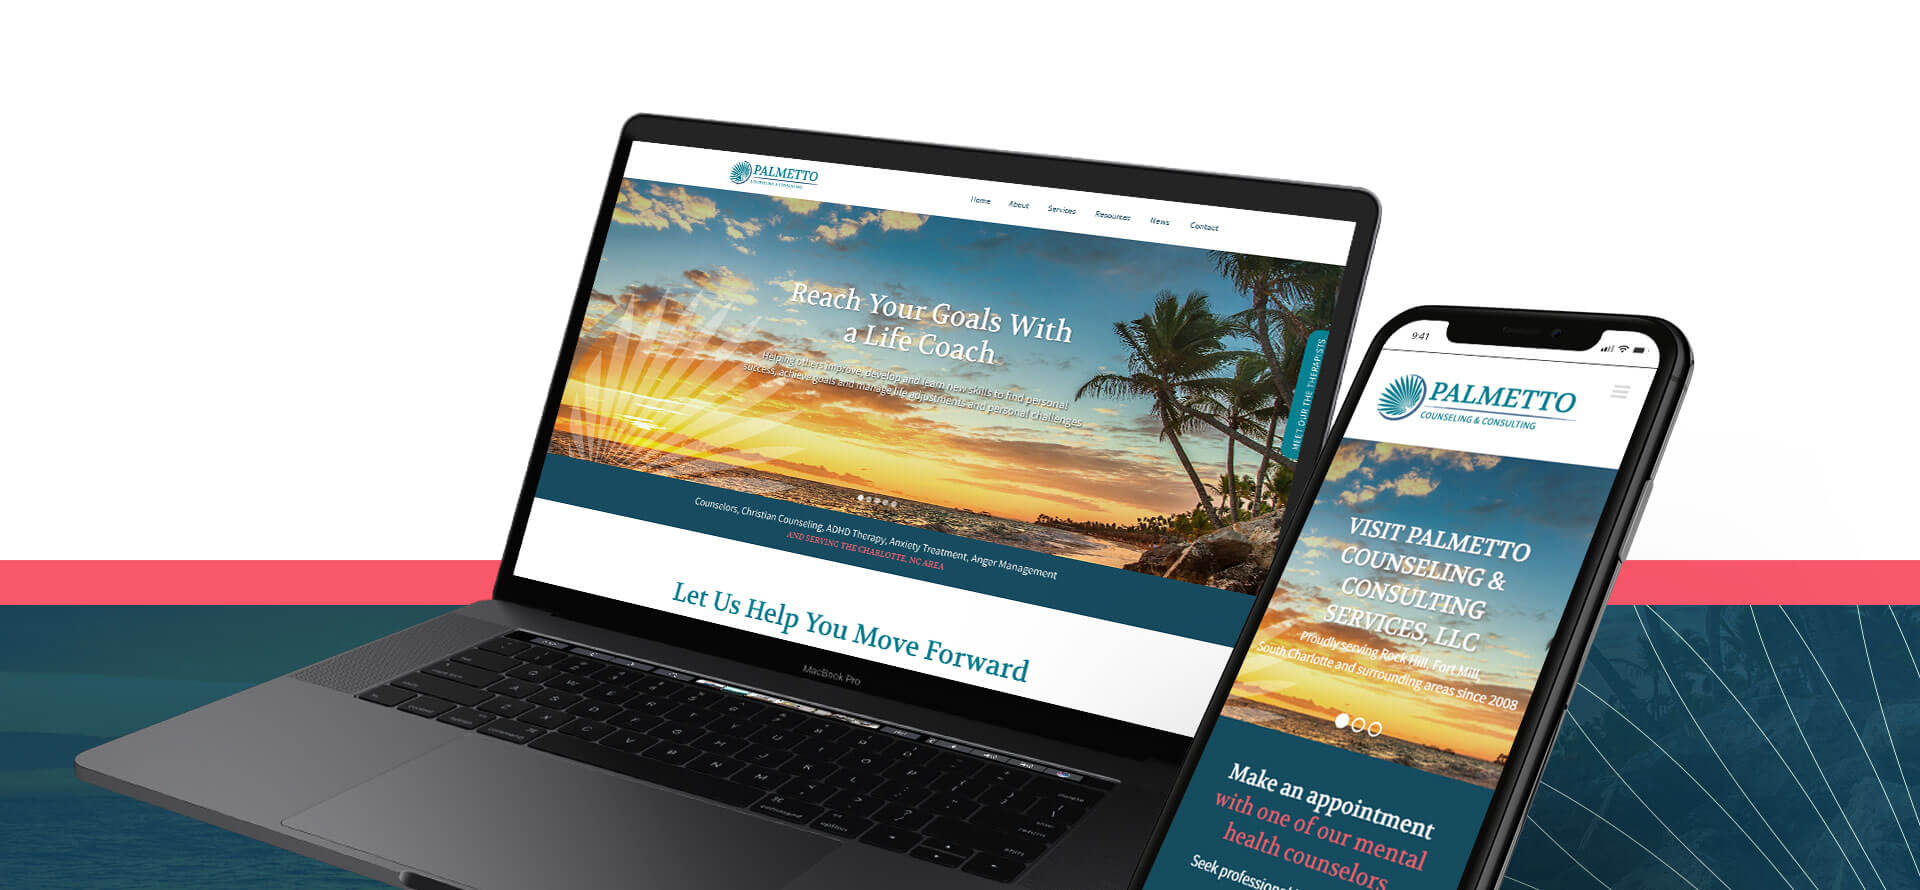 palmetto-logo-website-design-mock